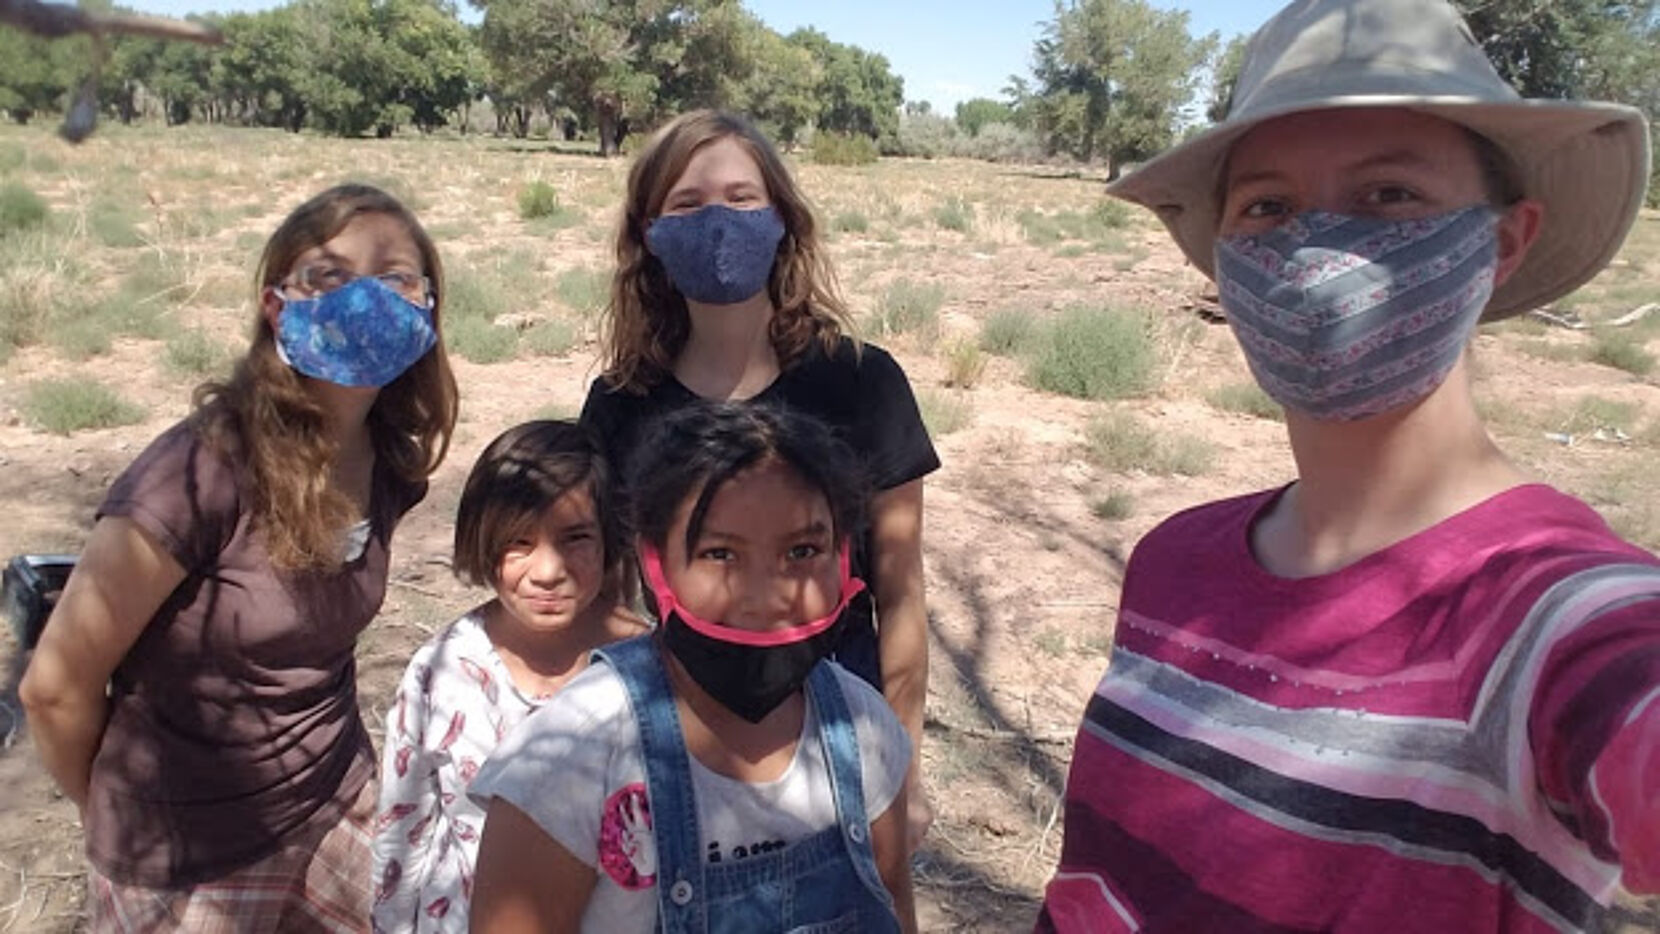 A group photo of five girls in masks.